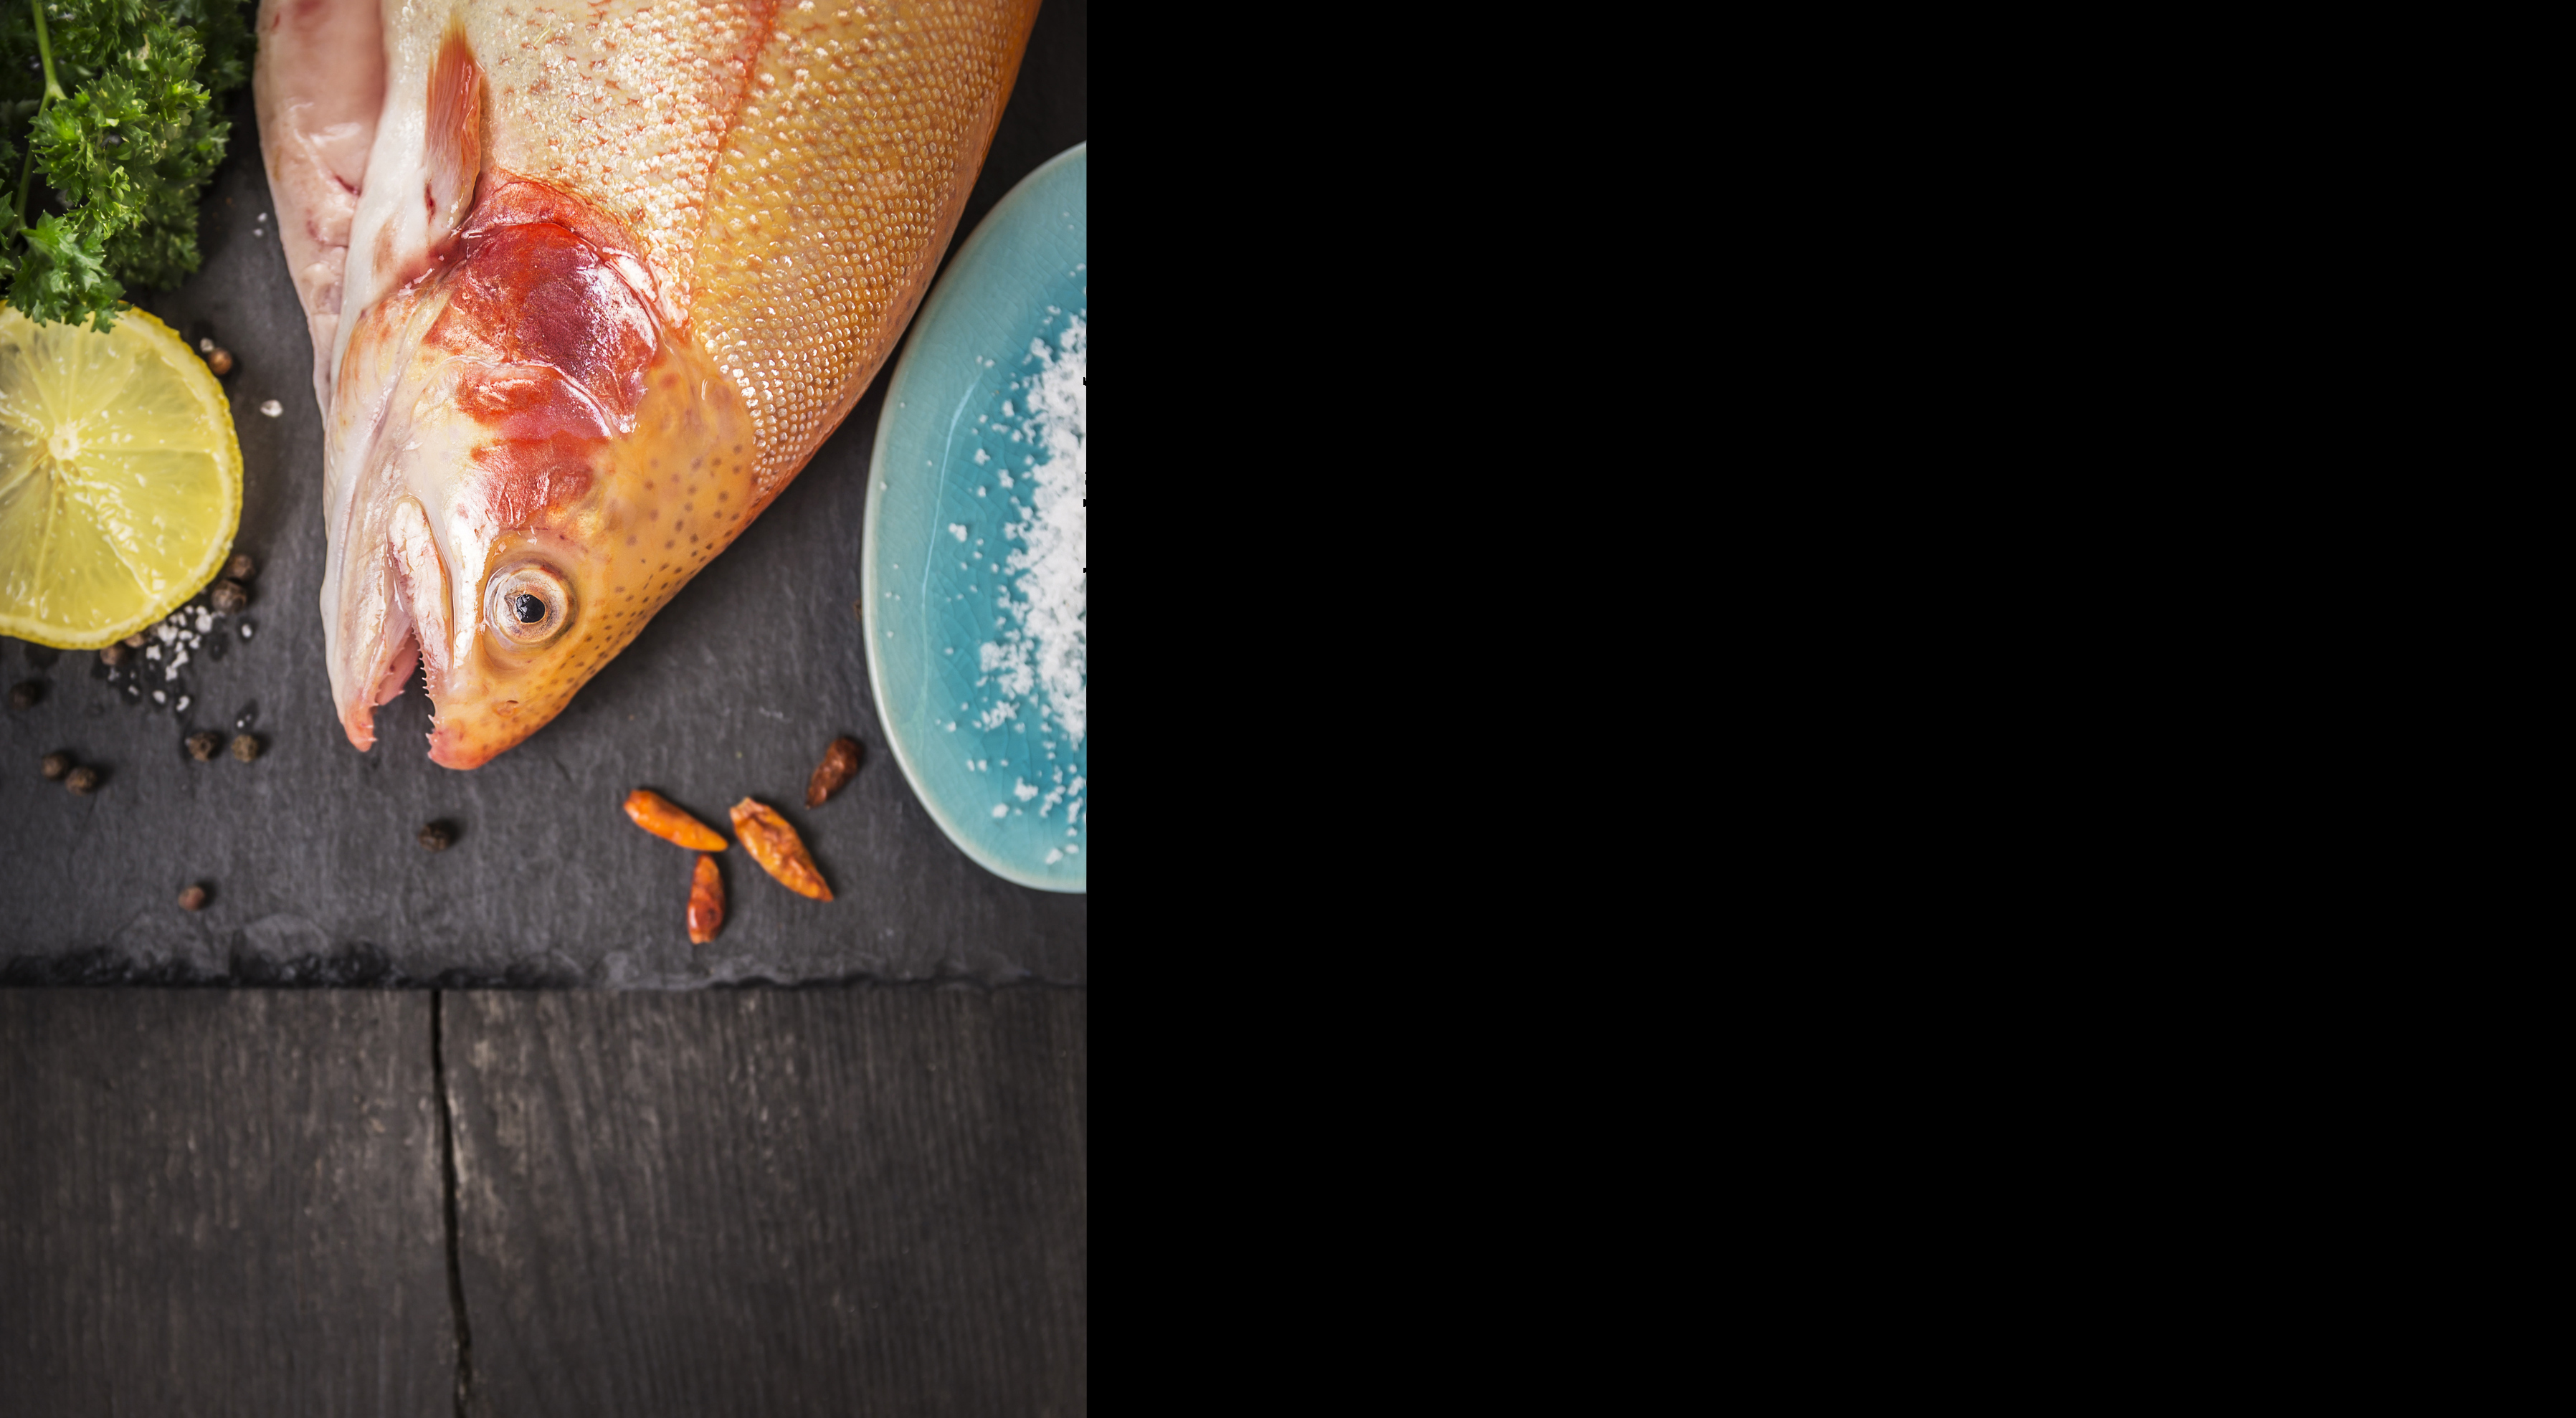 raw rainbow trout fish on wooden table, lemon and spices